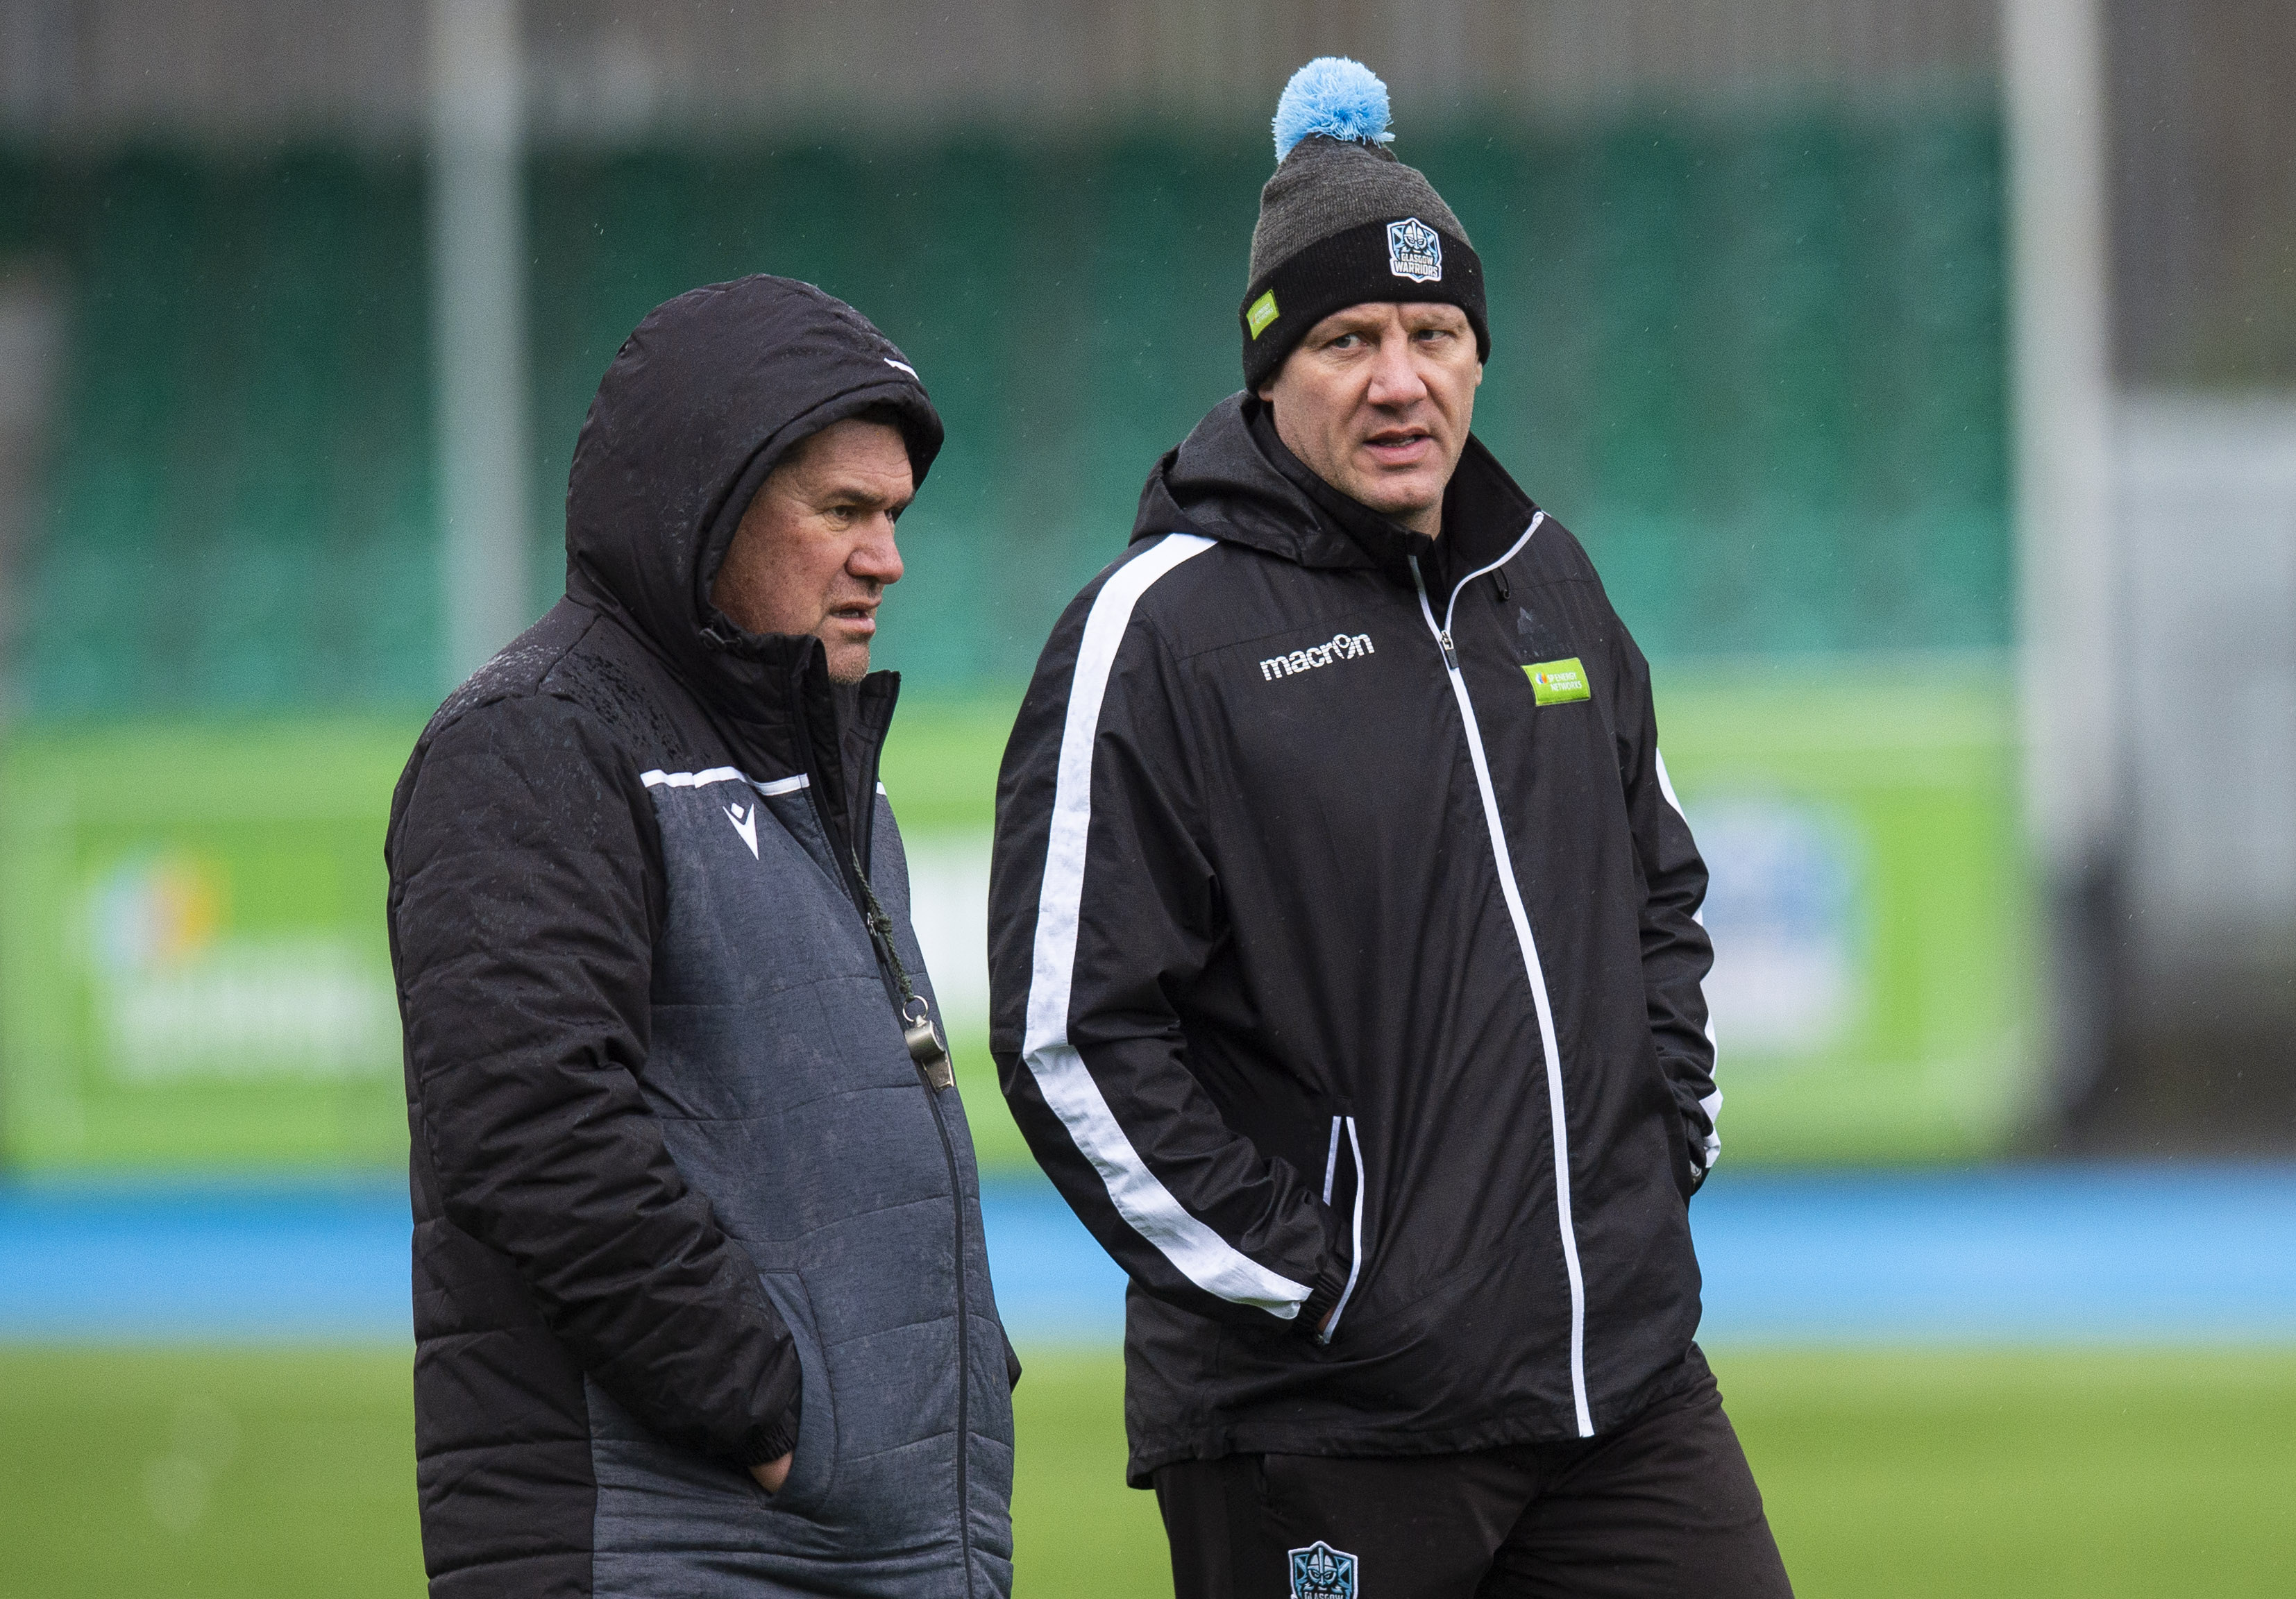 John Dalziel - seen here with former Glasgow coach Dave Rennie - has joined the national team coaching staff.